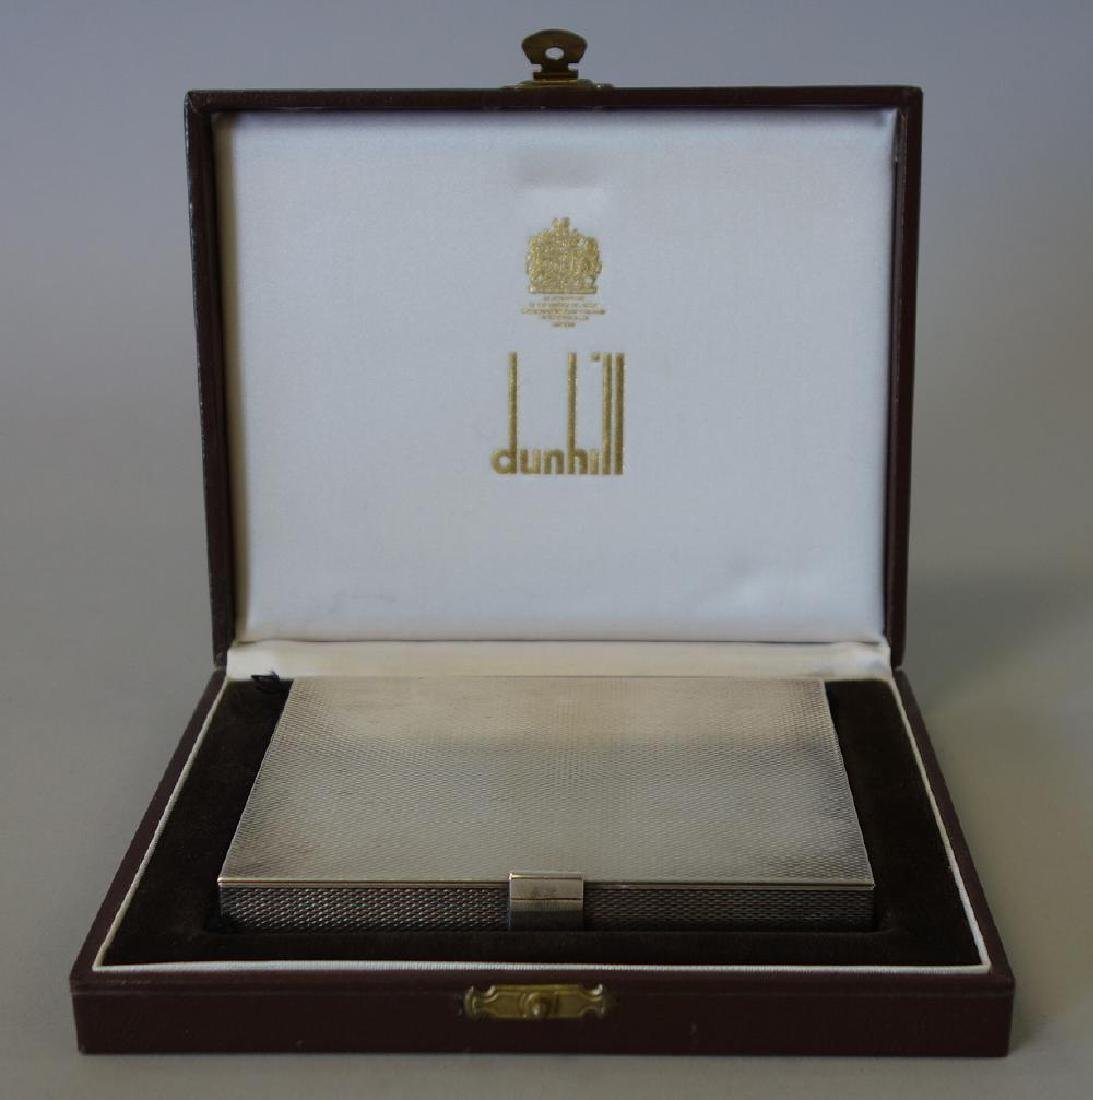 Dunhill, Paris Cigarette Case w/ Presentation Box